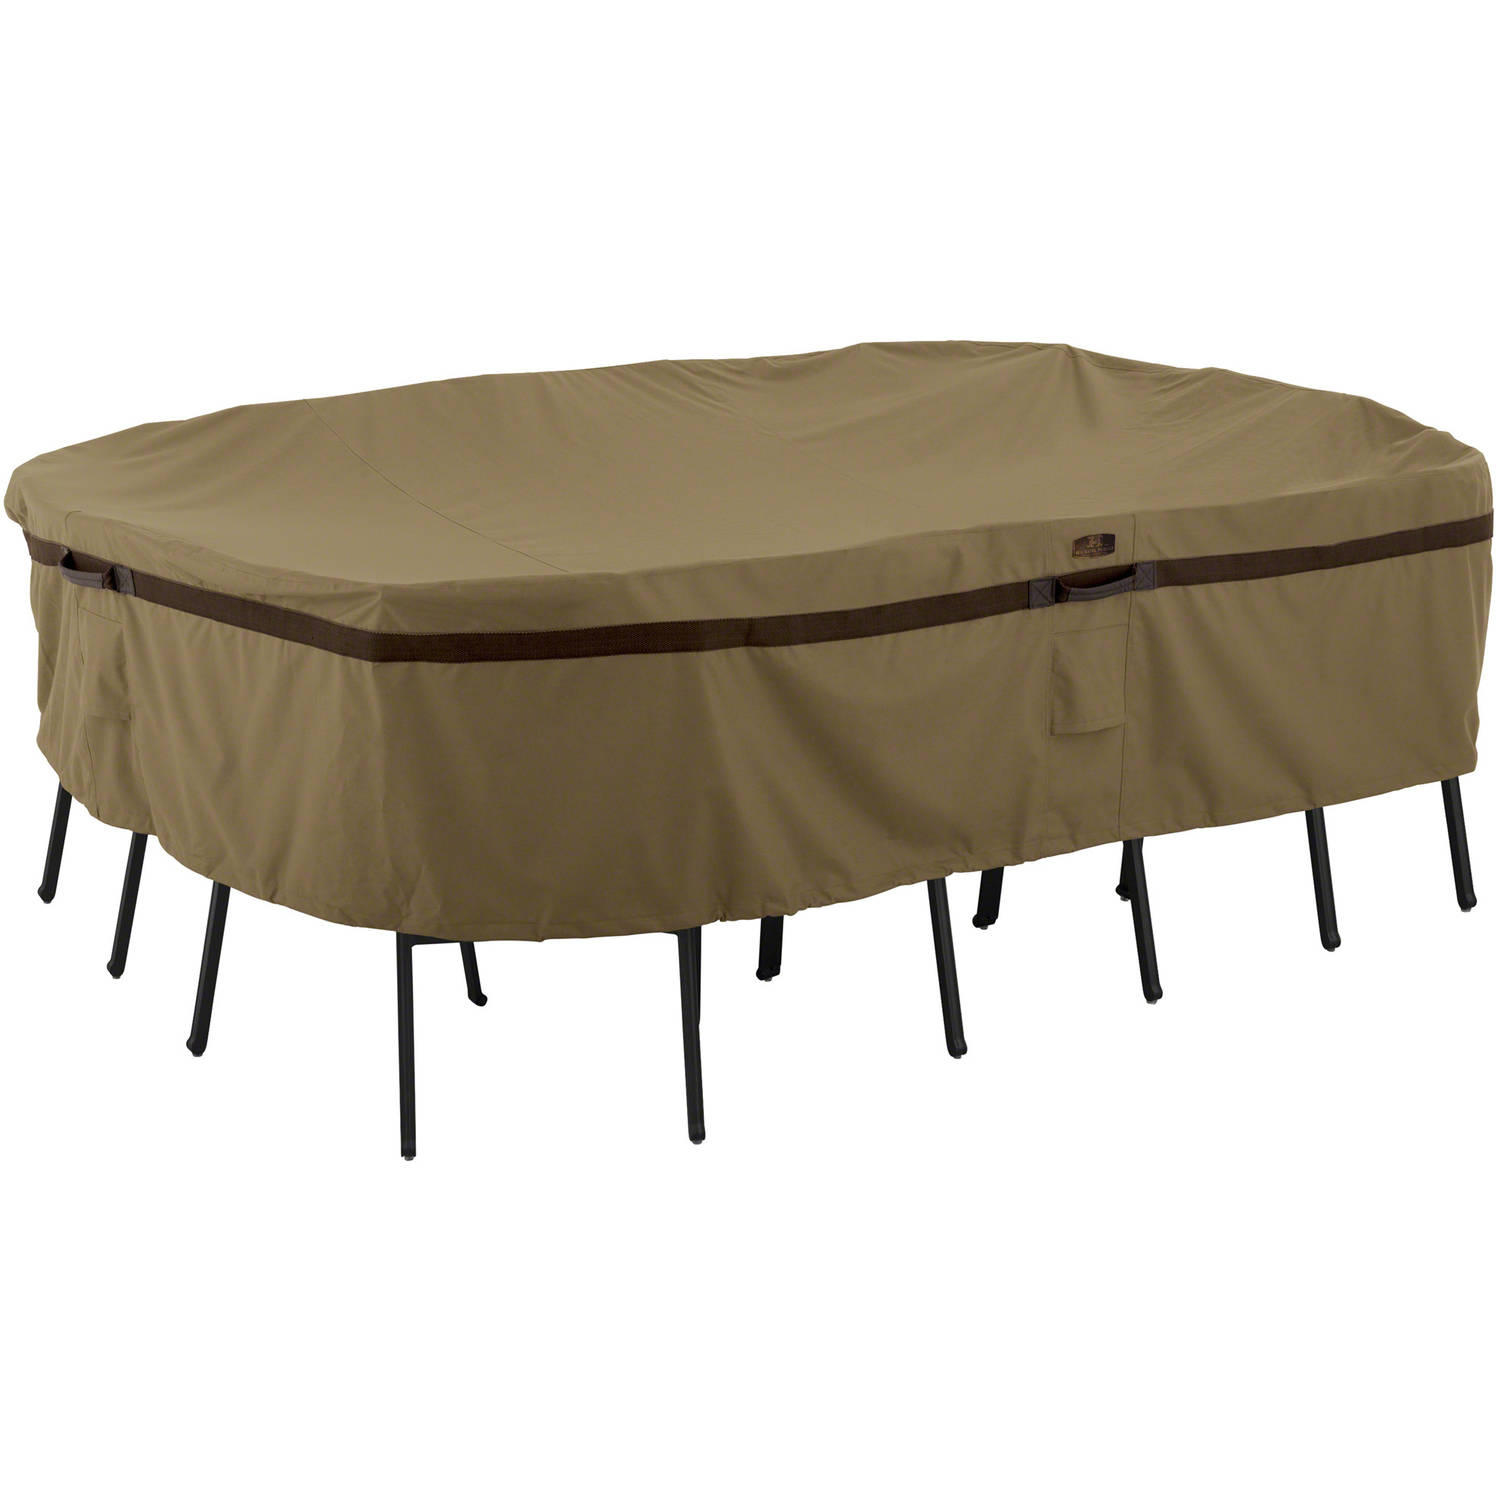 Classic Accessories Hickory Table and Chair Patio Furniture Storage Cover, Rectangular/Oval, Medium, Tan